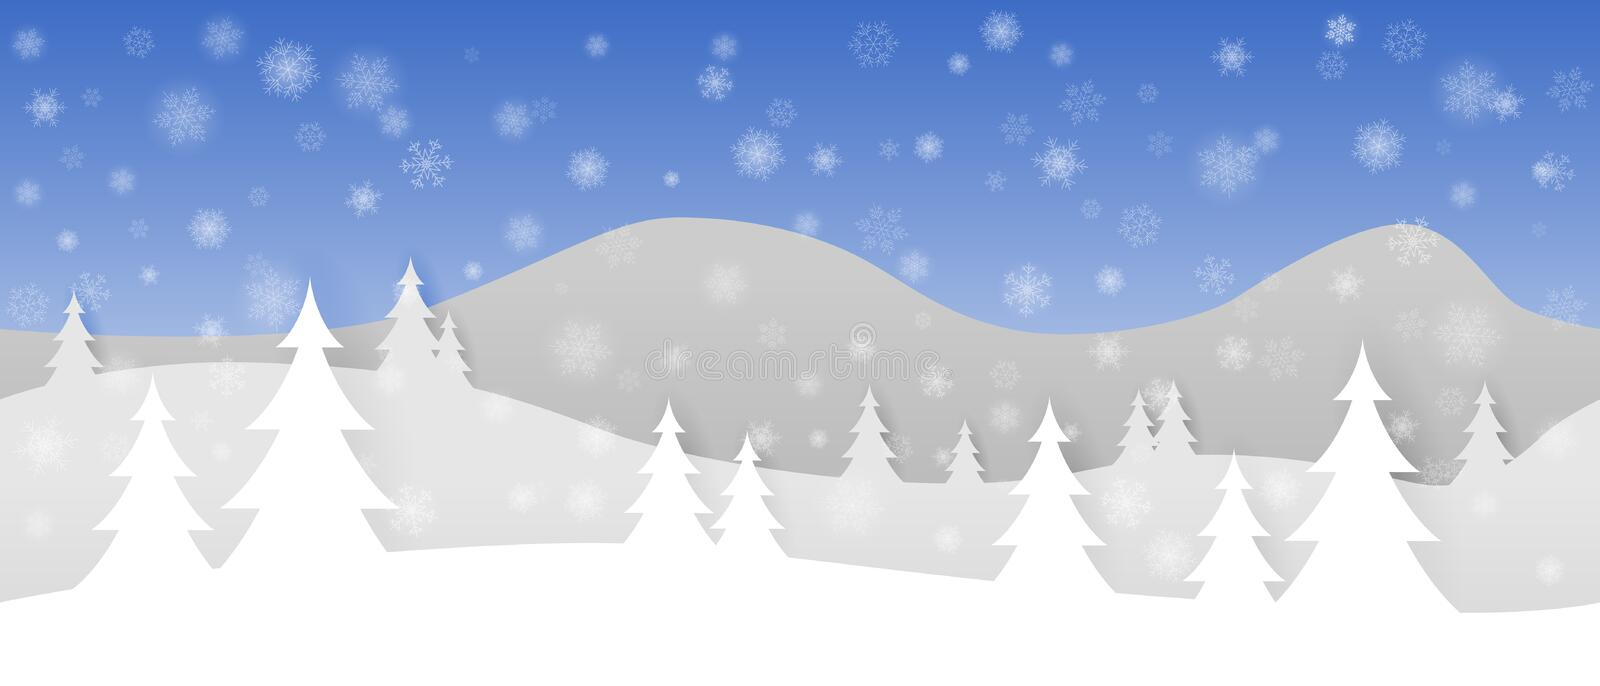 Simple seamless paper cut winter vector landscape with layered mountains, trees and falling snowflakes on blue background royalty free illustration